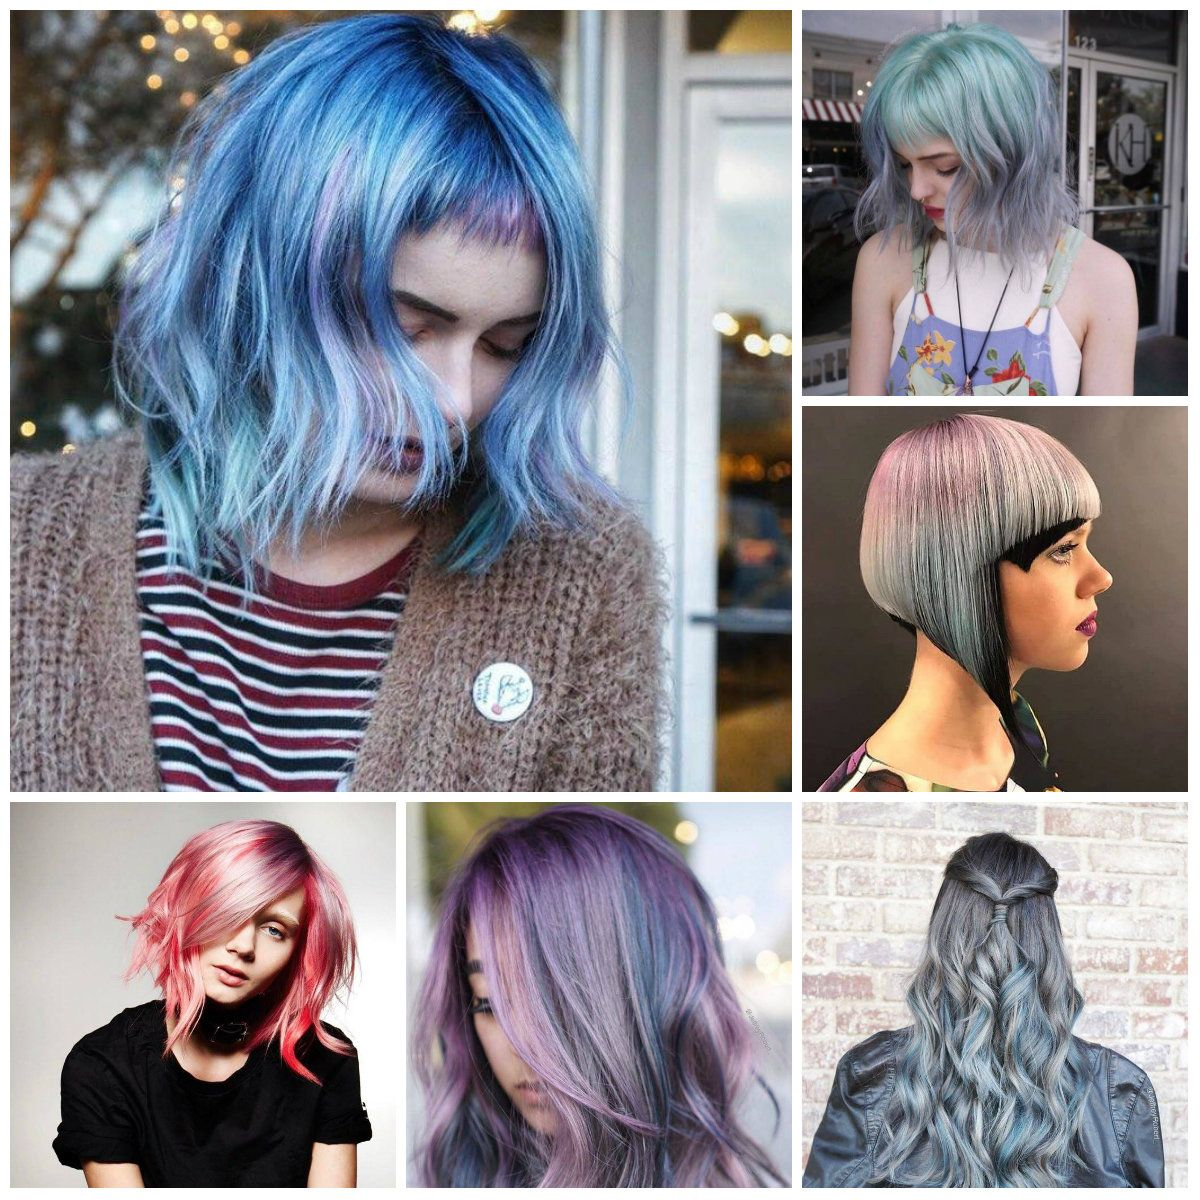 multi-colored hairstyles for 2018 | colorful dreams in 2018